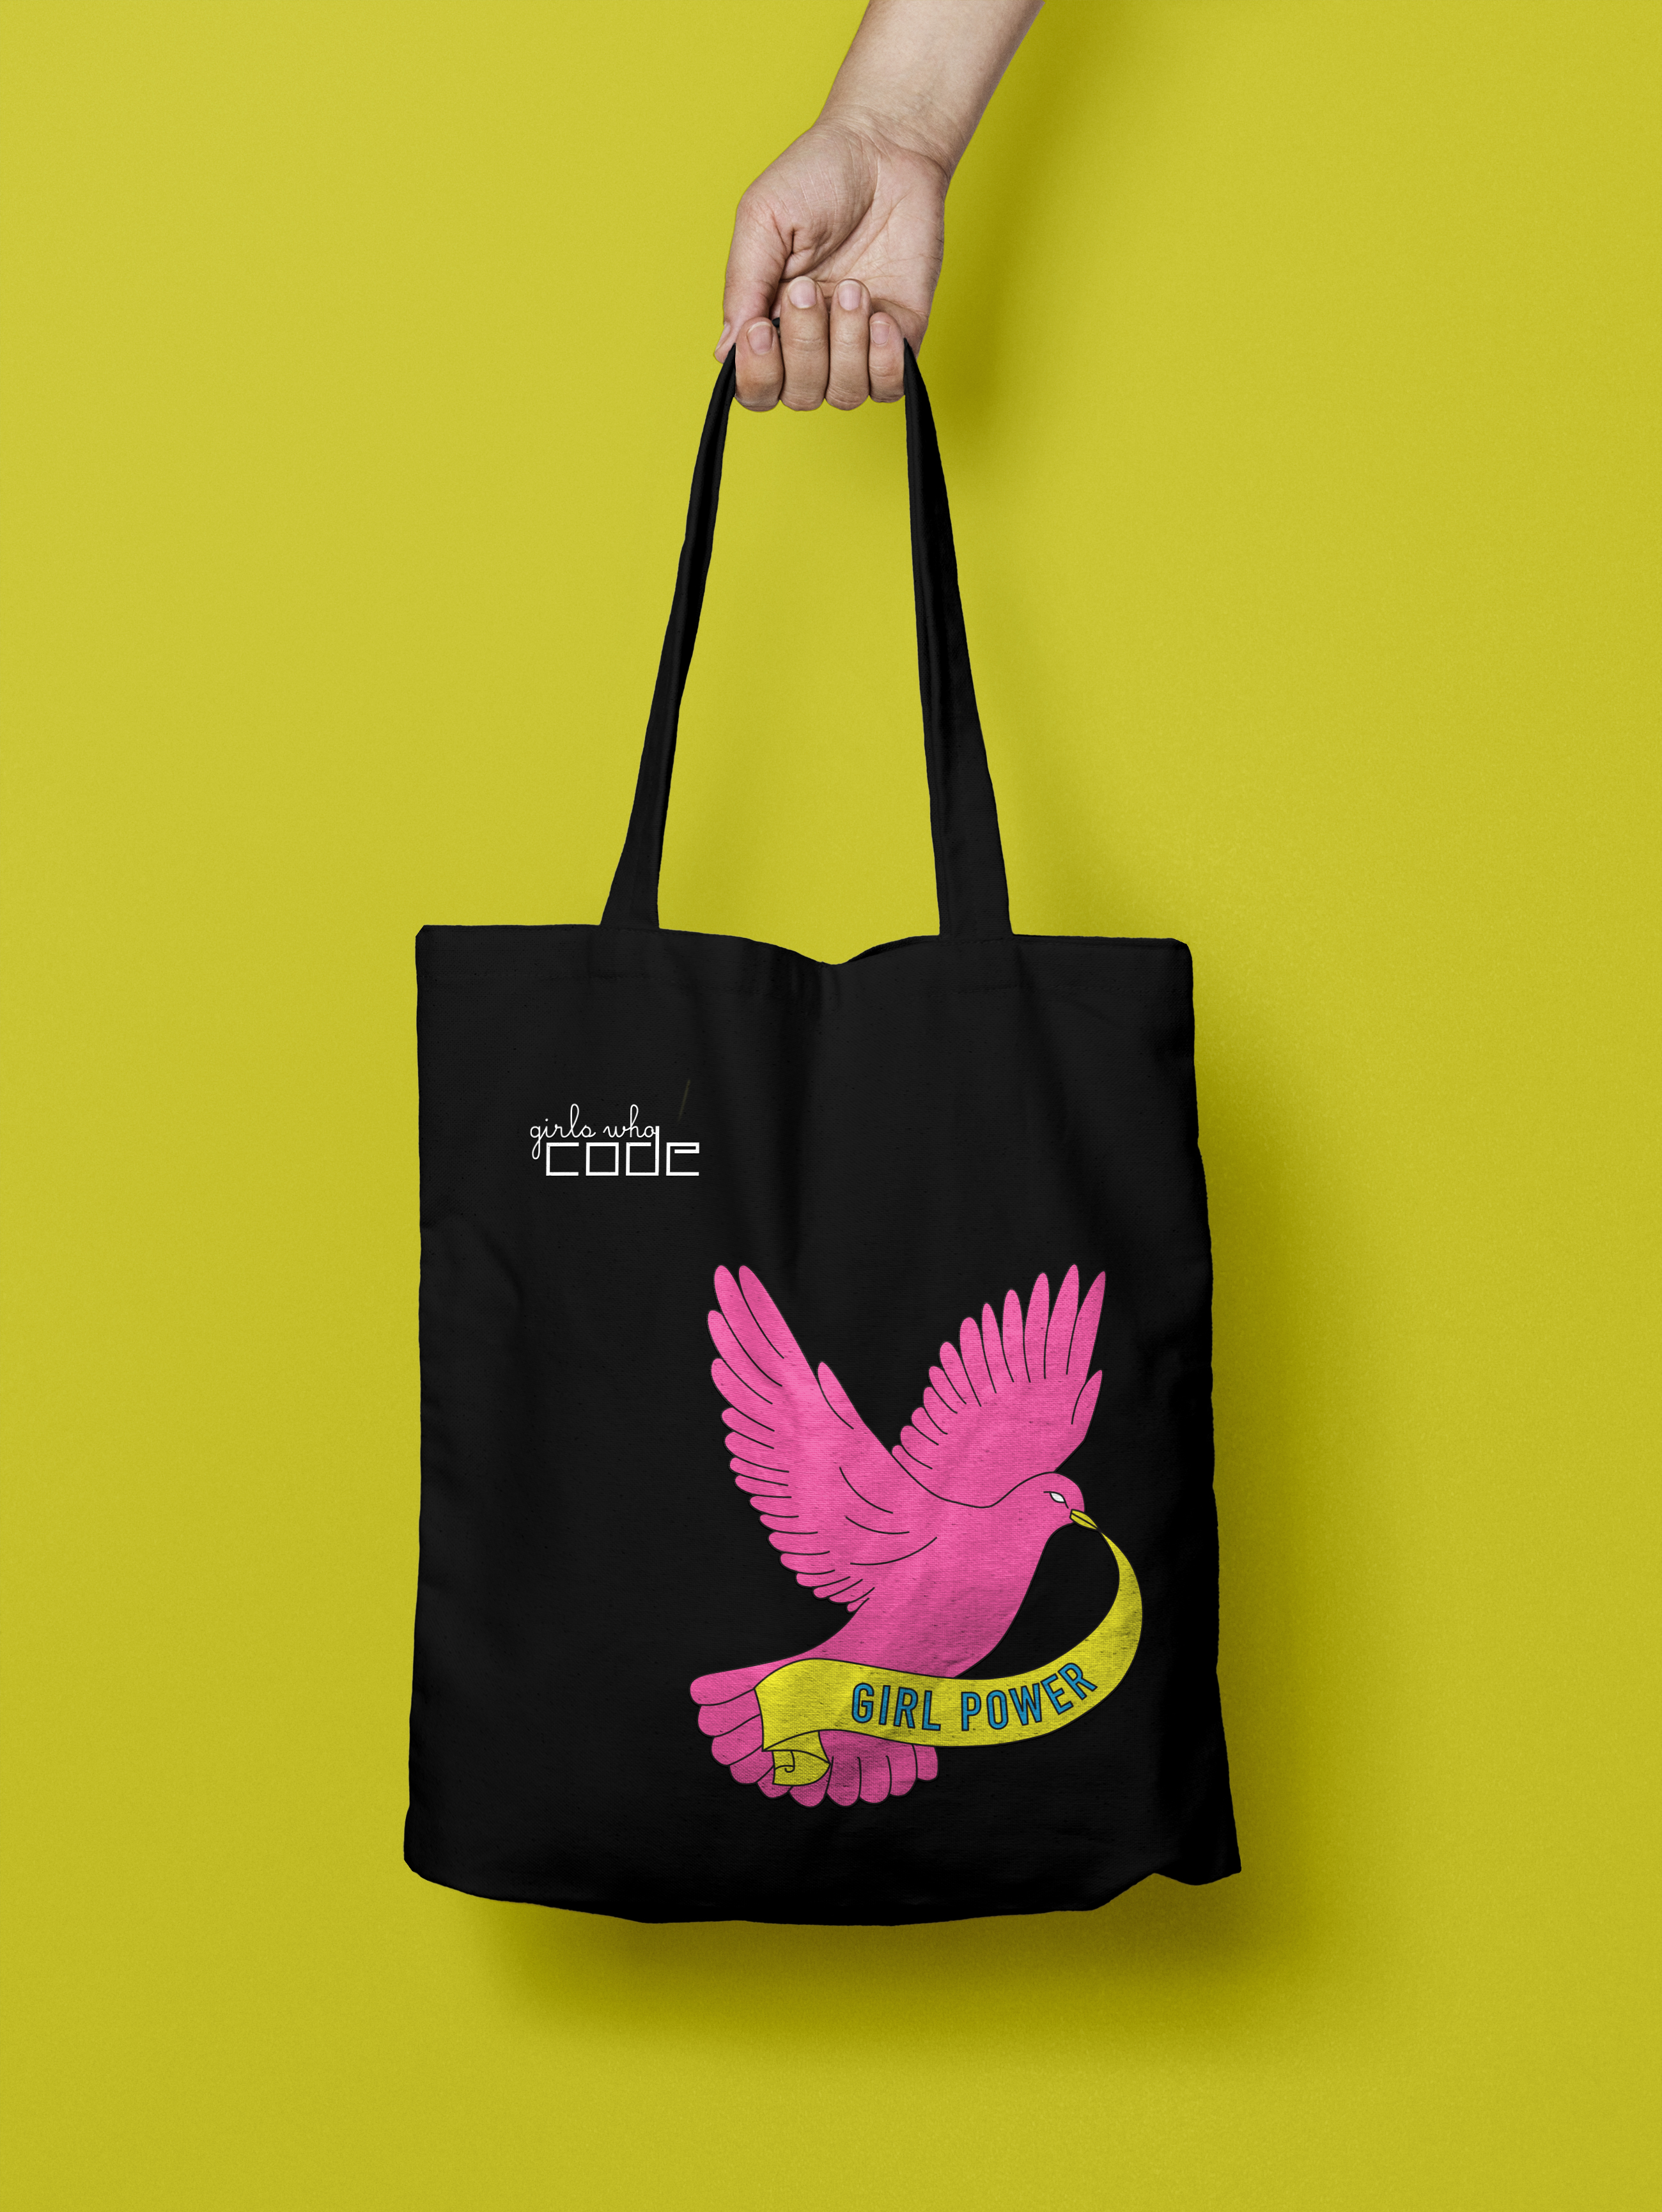 The Day Off Tote Bag